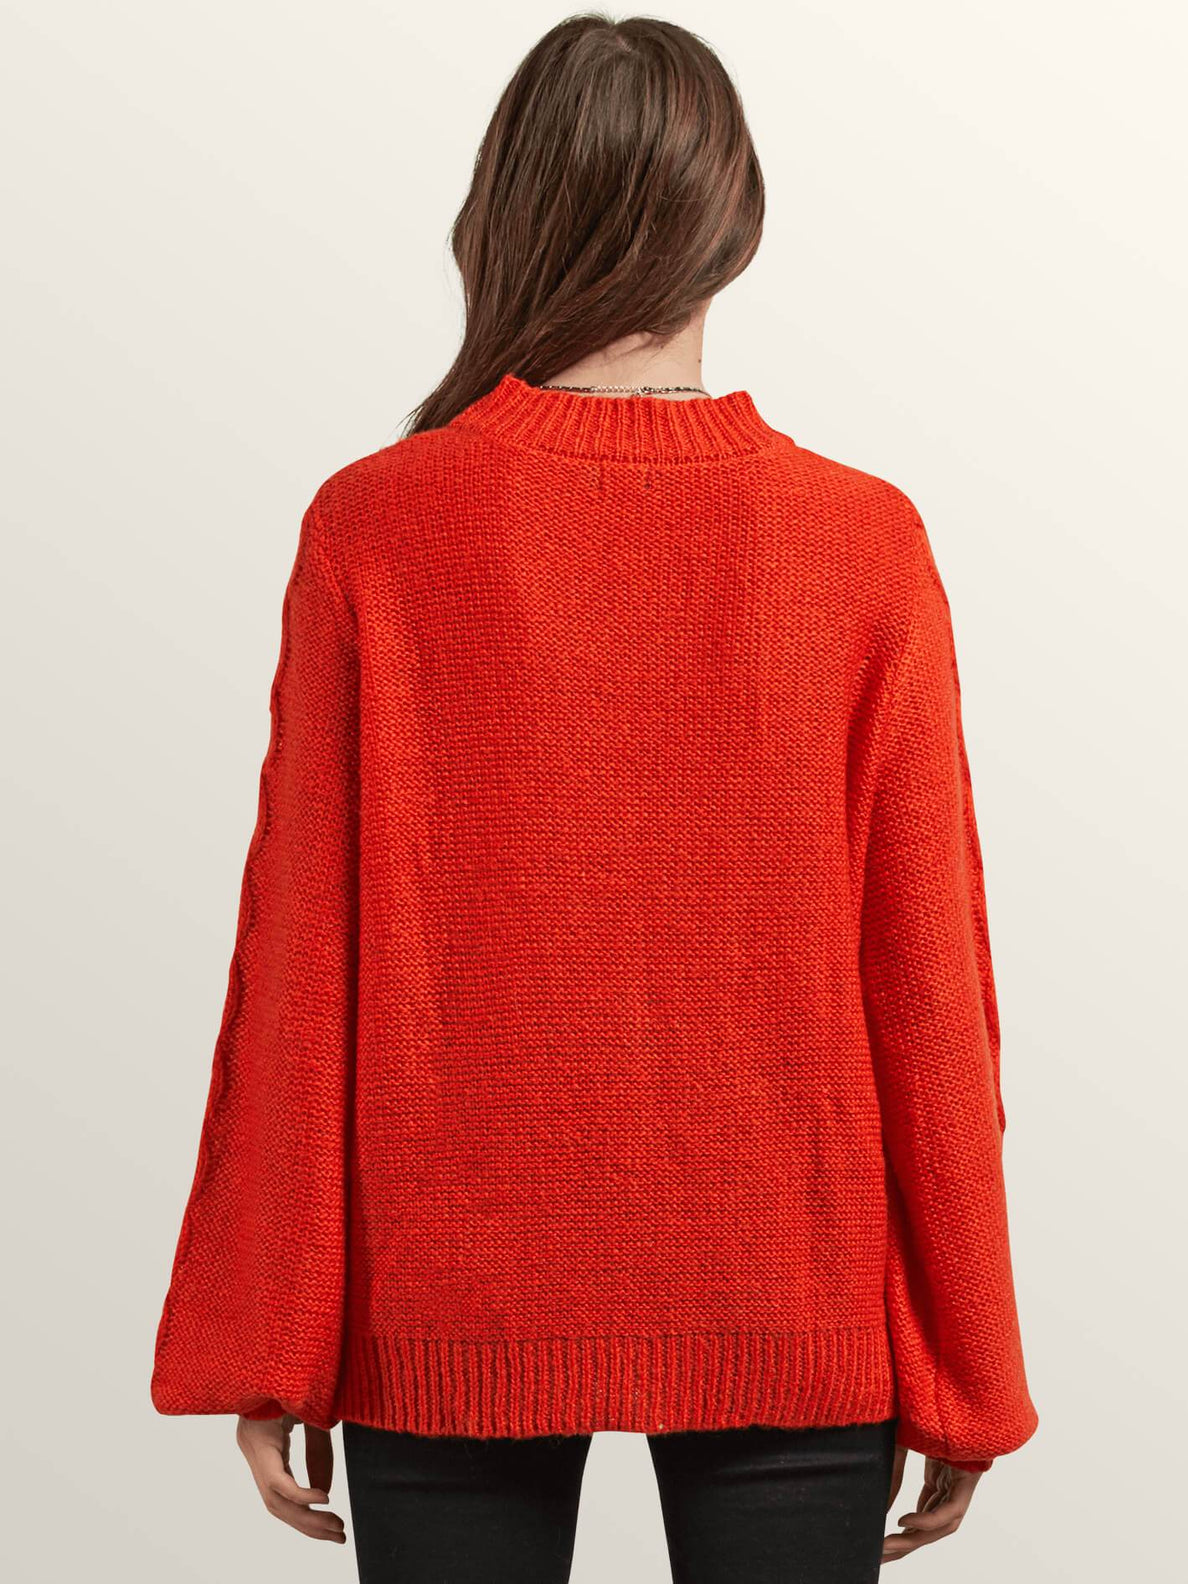 Hellooo Sweater In Tangerine, Back View